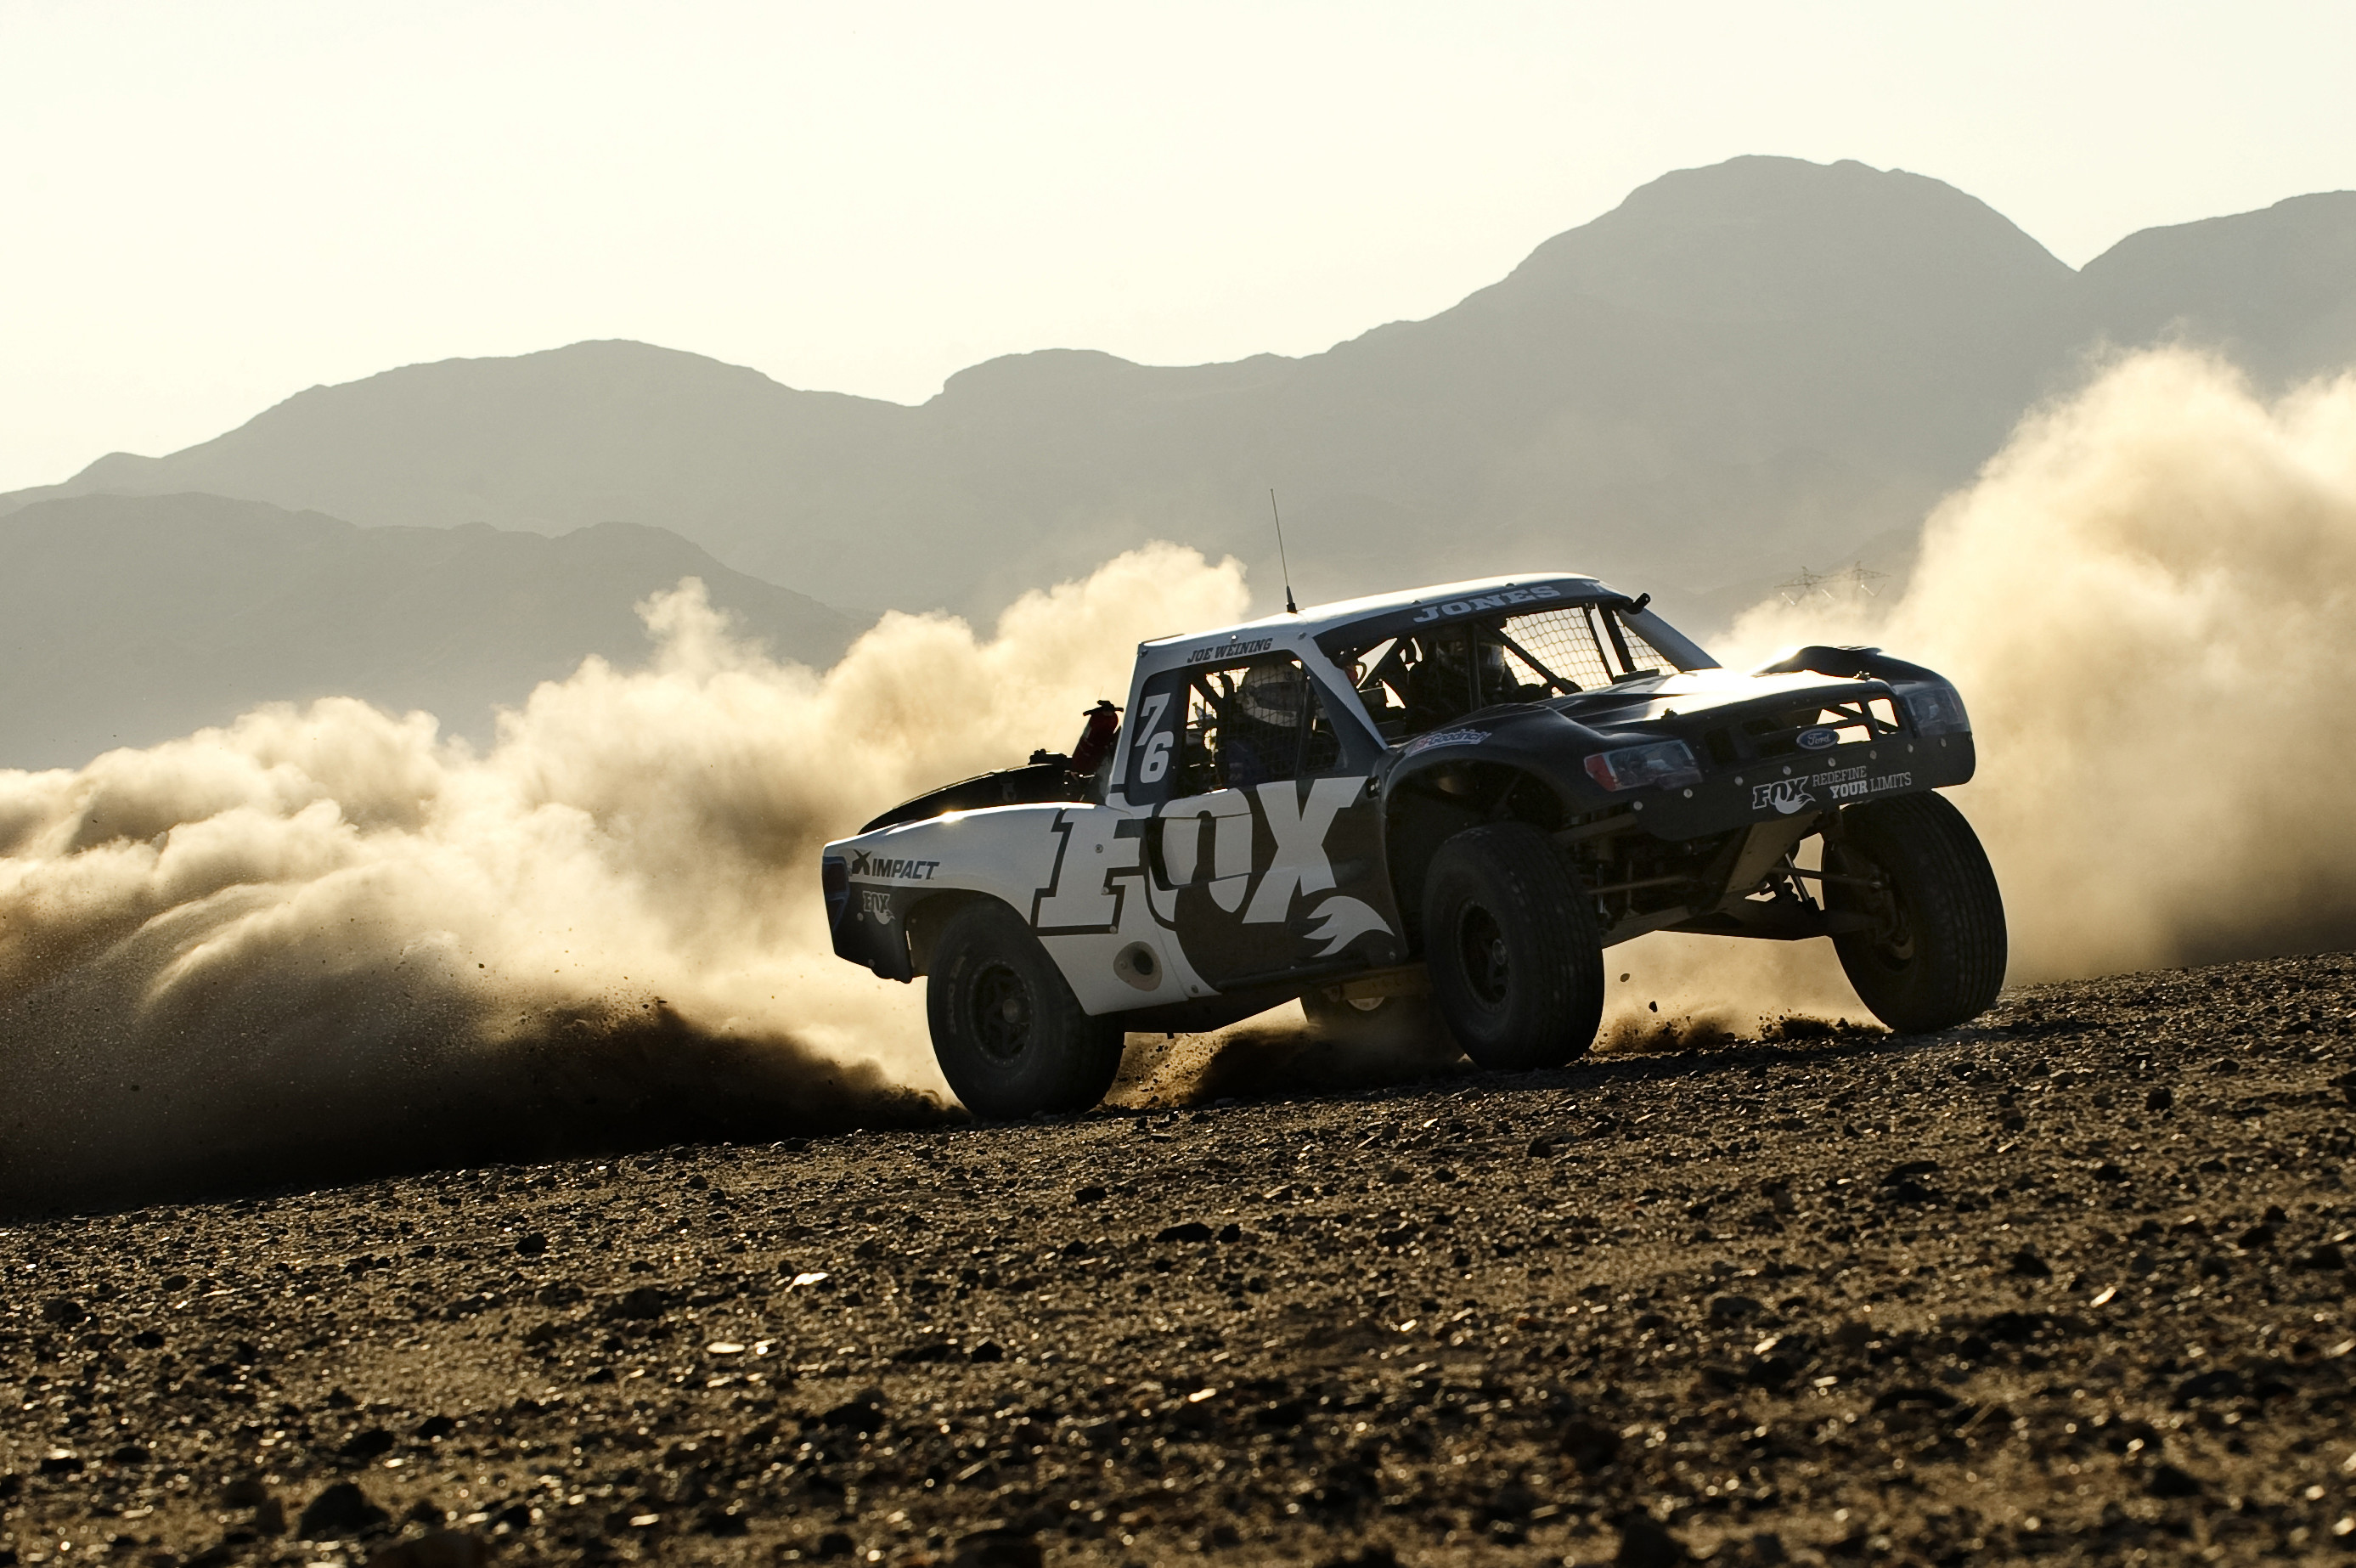 Res: 2774x1846, 5 HD Trophy Truck Wallpapers